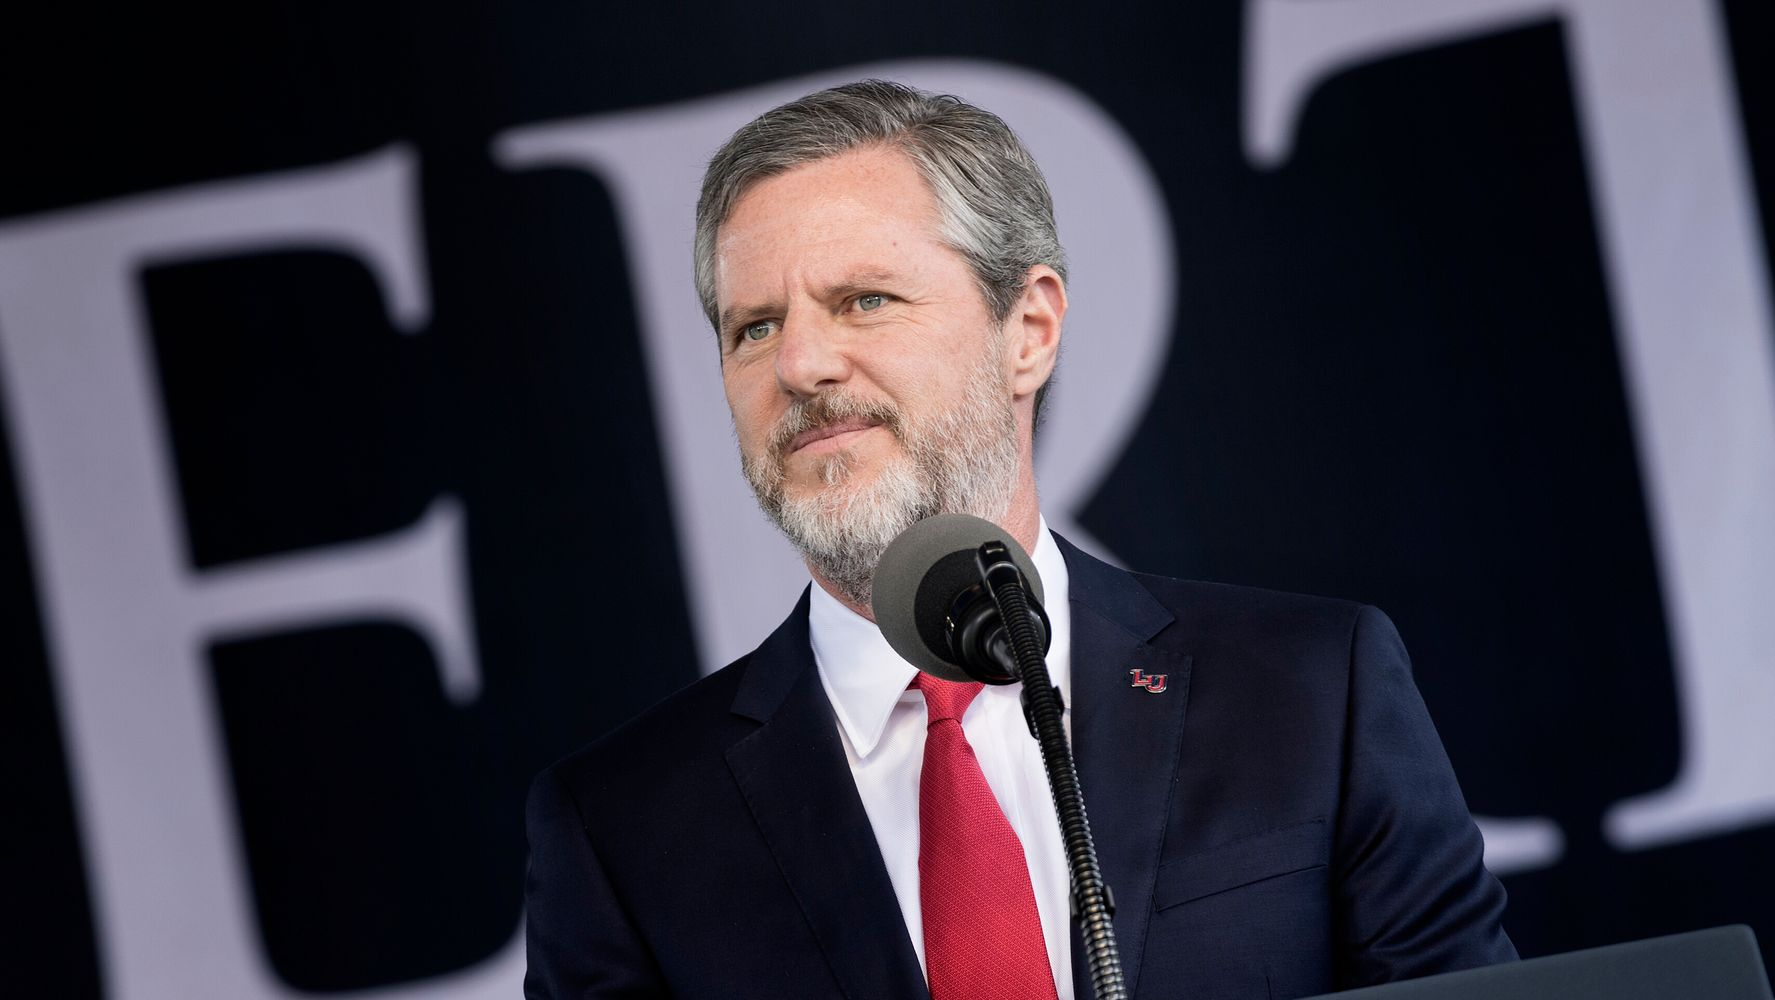 Westlake Legal Group 5d78724b2300001005512bed Liberty University President Jerry Falwell Jr. Says He's Target Of 'Attempted Coup'